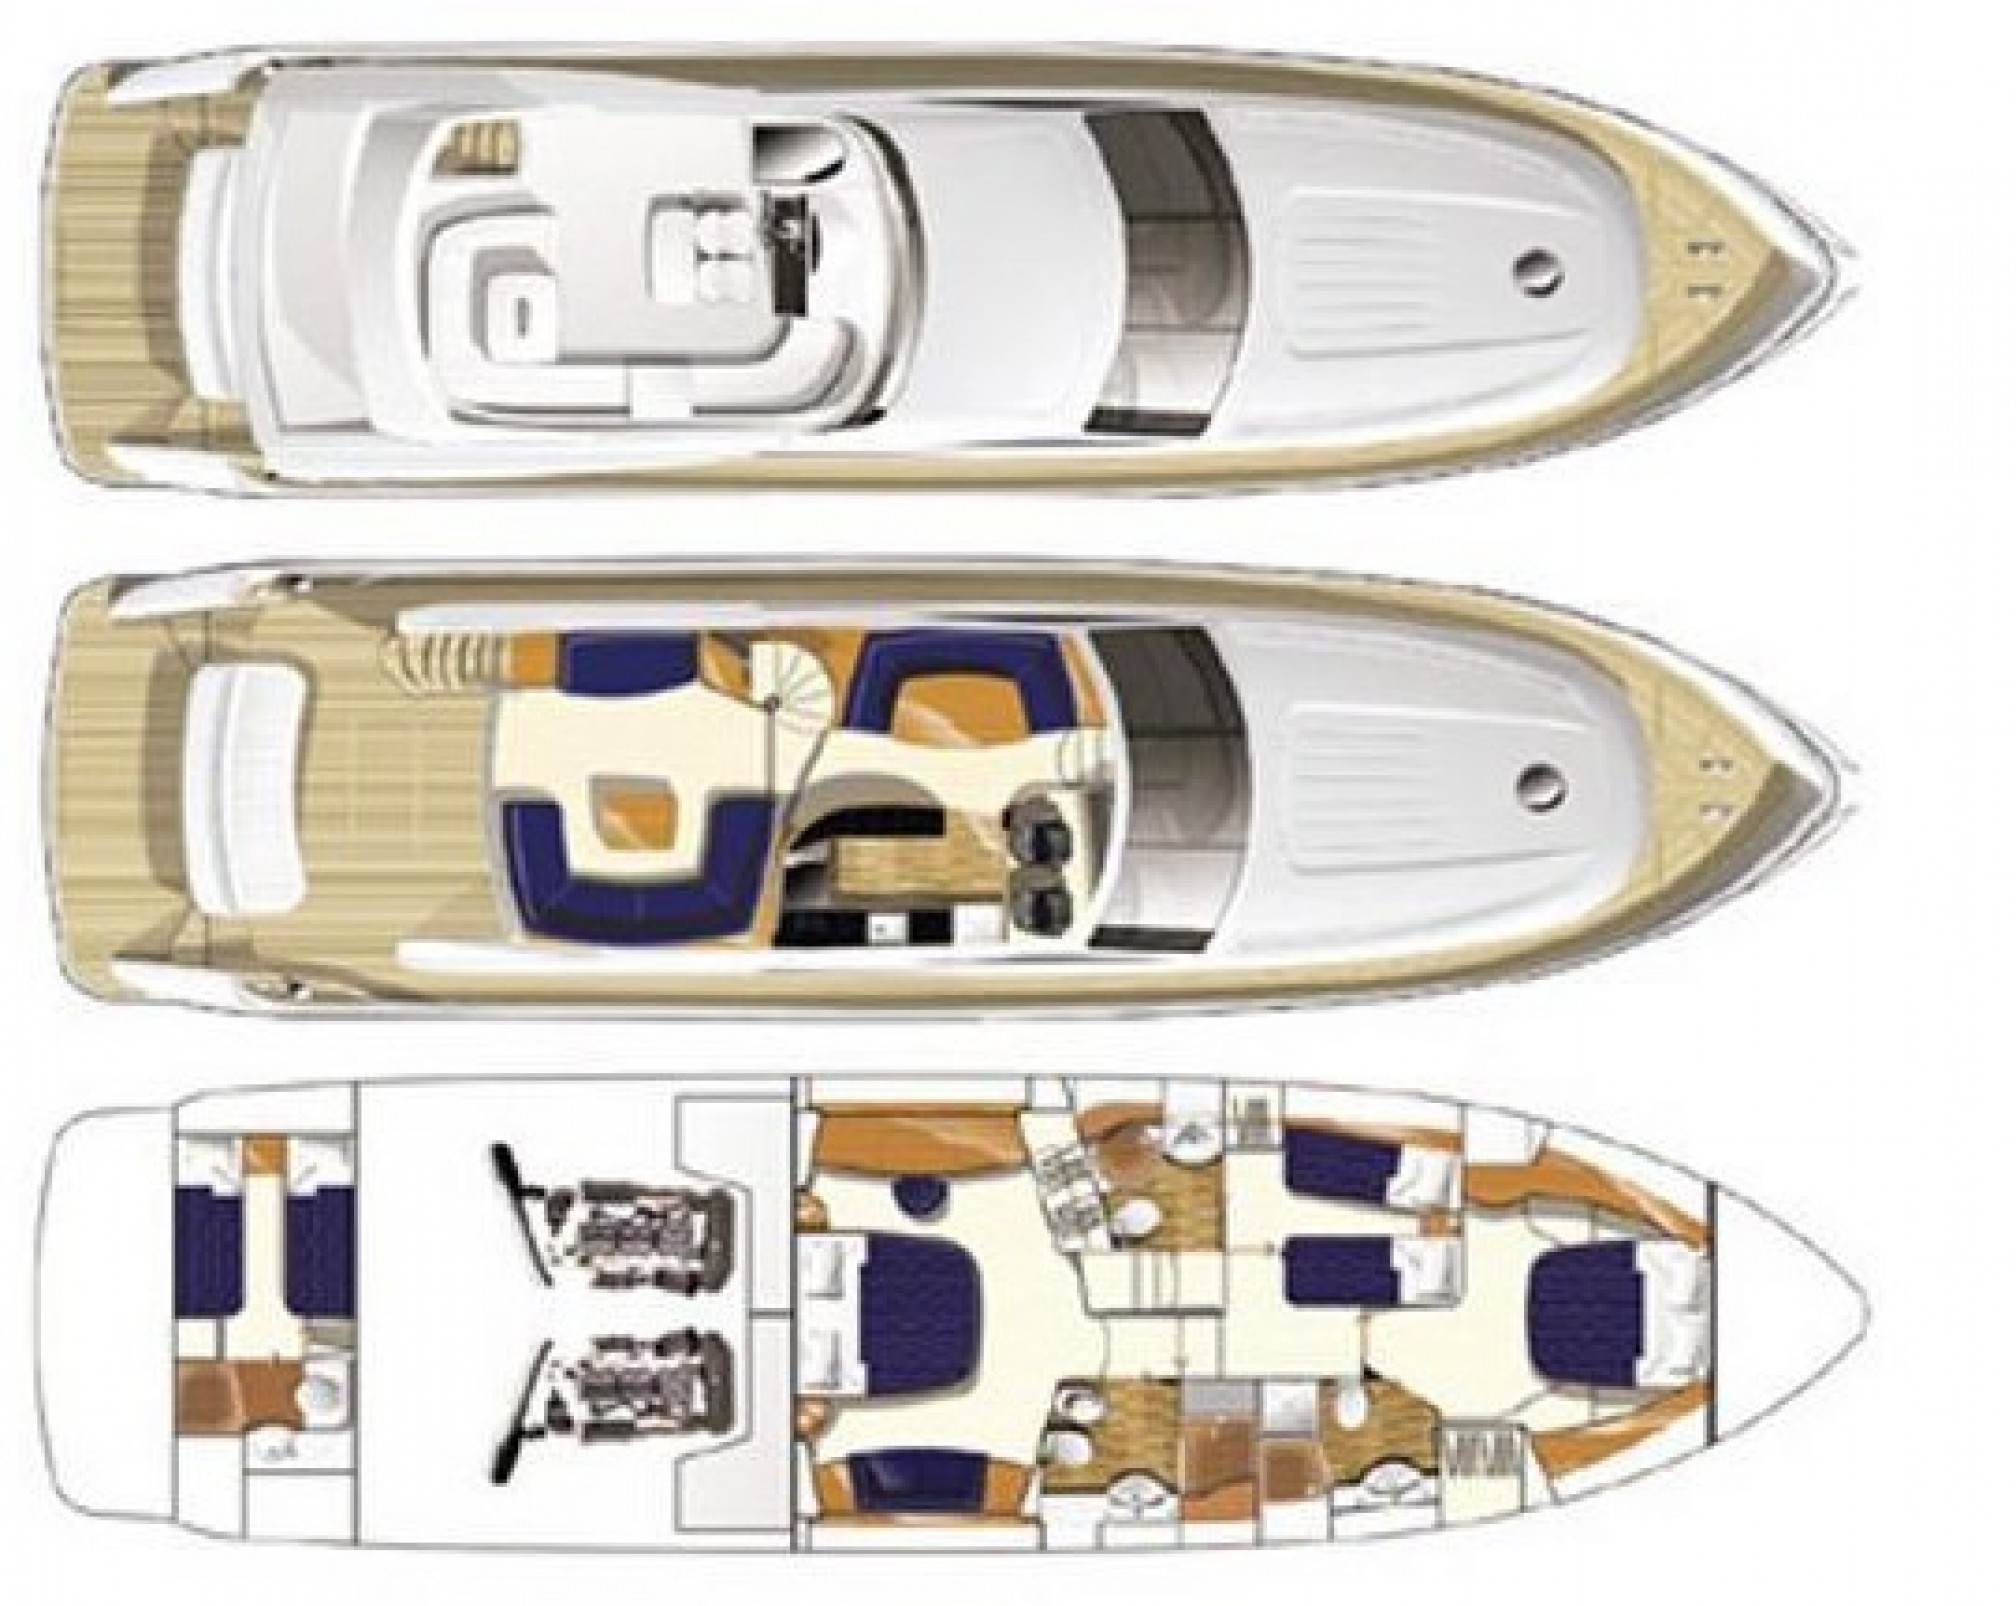 SORANA - Princess 67 - Layout